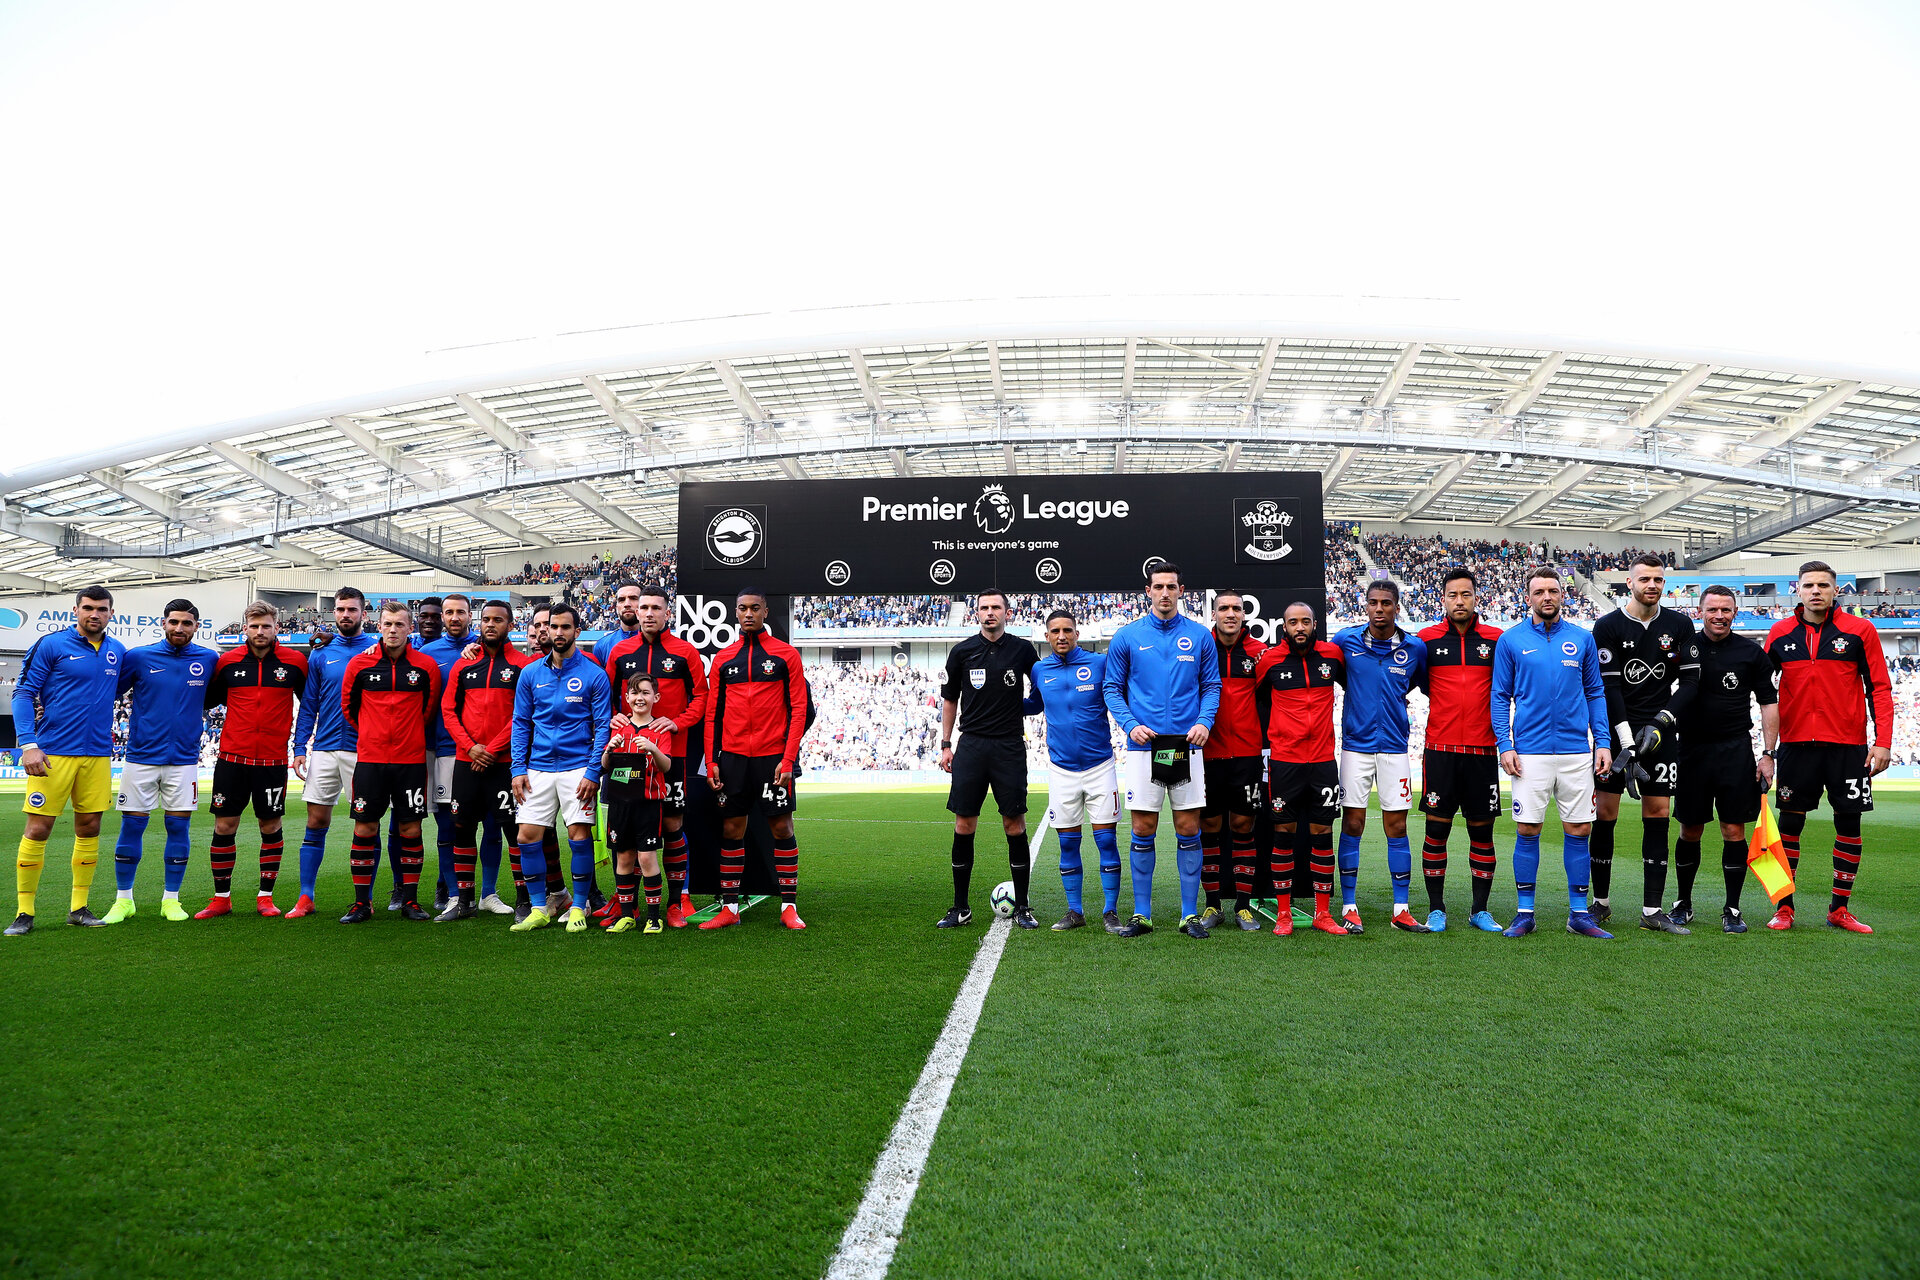 BRIGHTON, ENGLAND - MARCH 30: teams come together ahead of the Premier League match between Brighton & Hove Albion and Southampton FC at American Express Community Stadium on March 30, 2019 in Brighton, United Kingdom. (Photo by Matt Watson/Southampton FC via Getty Images)